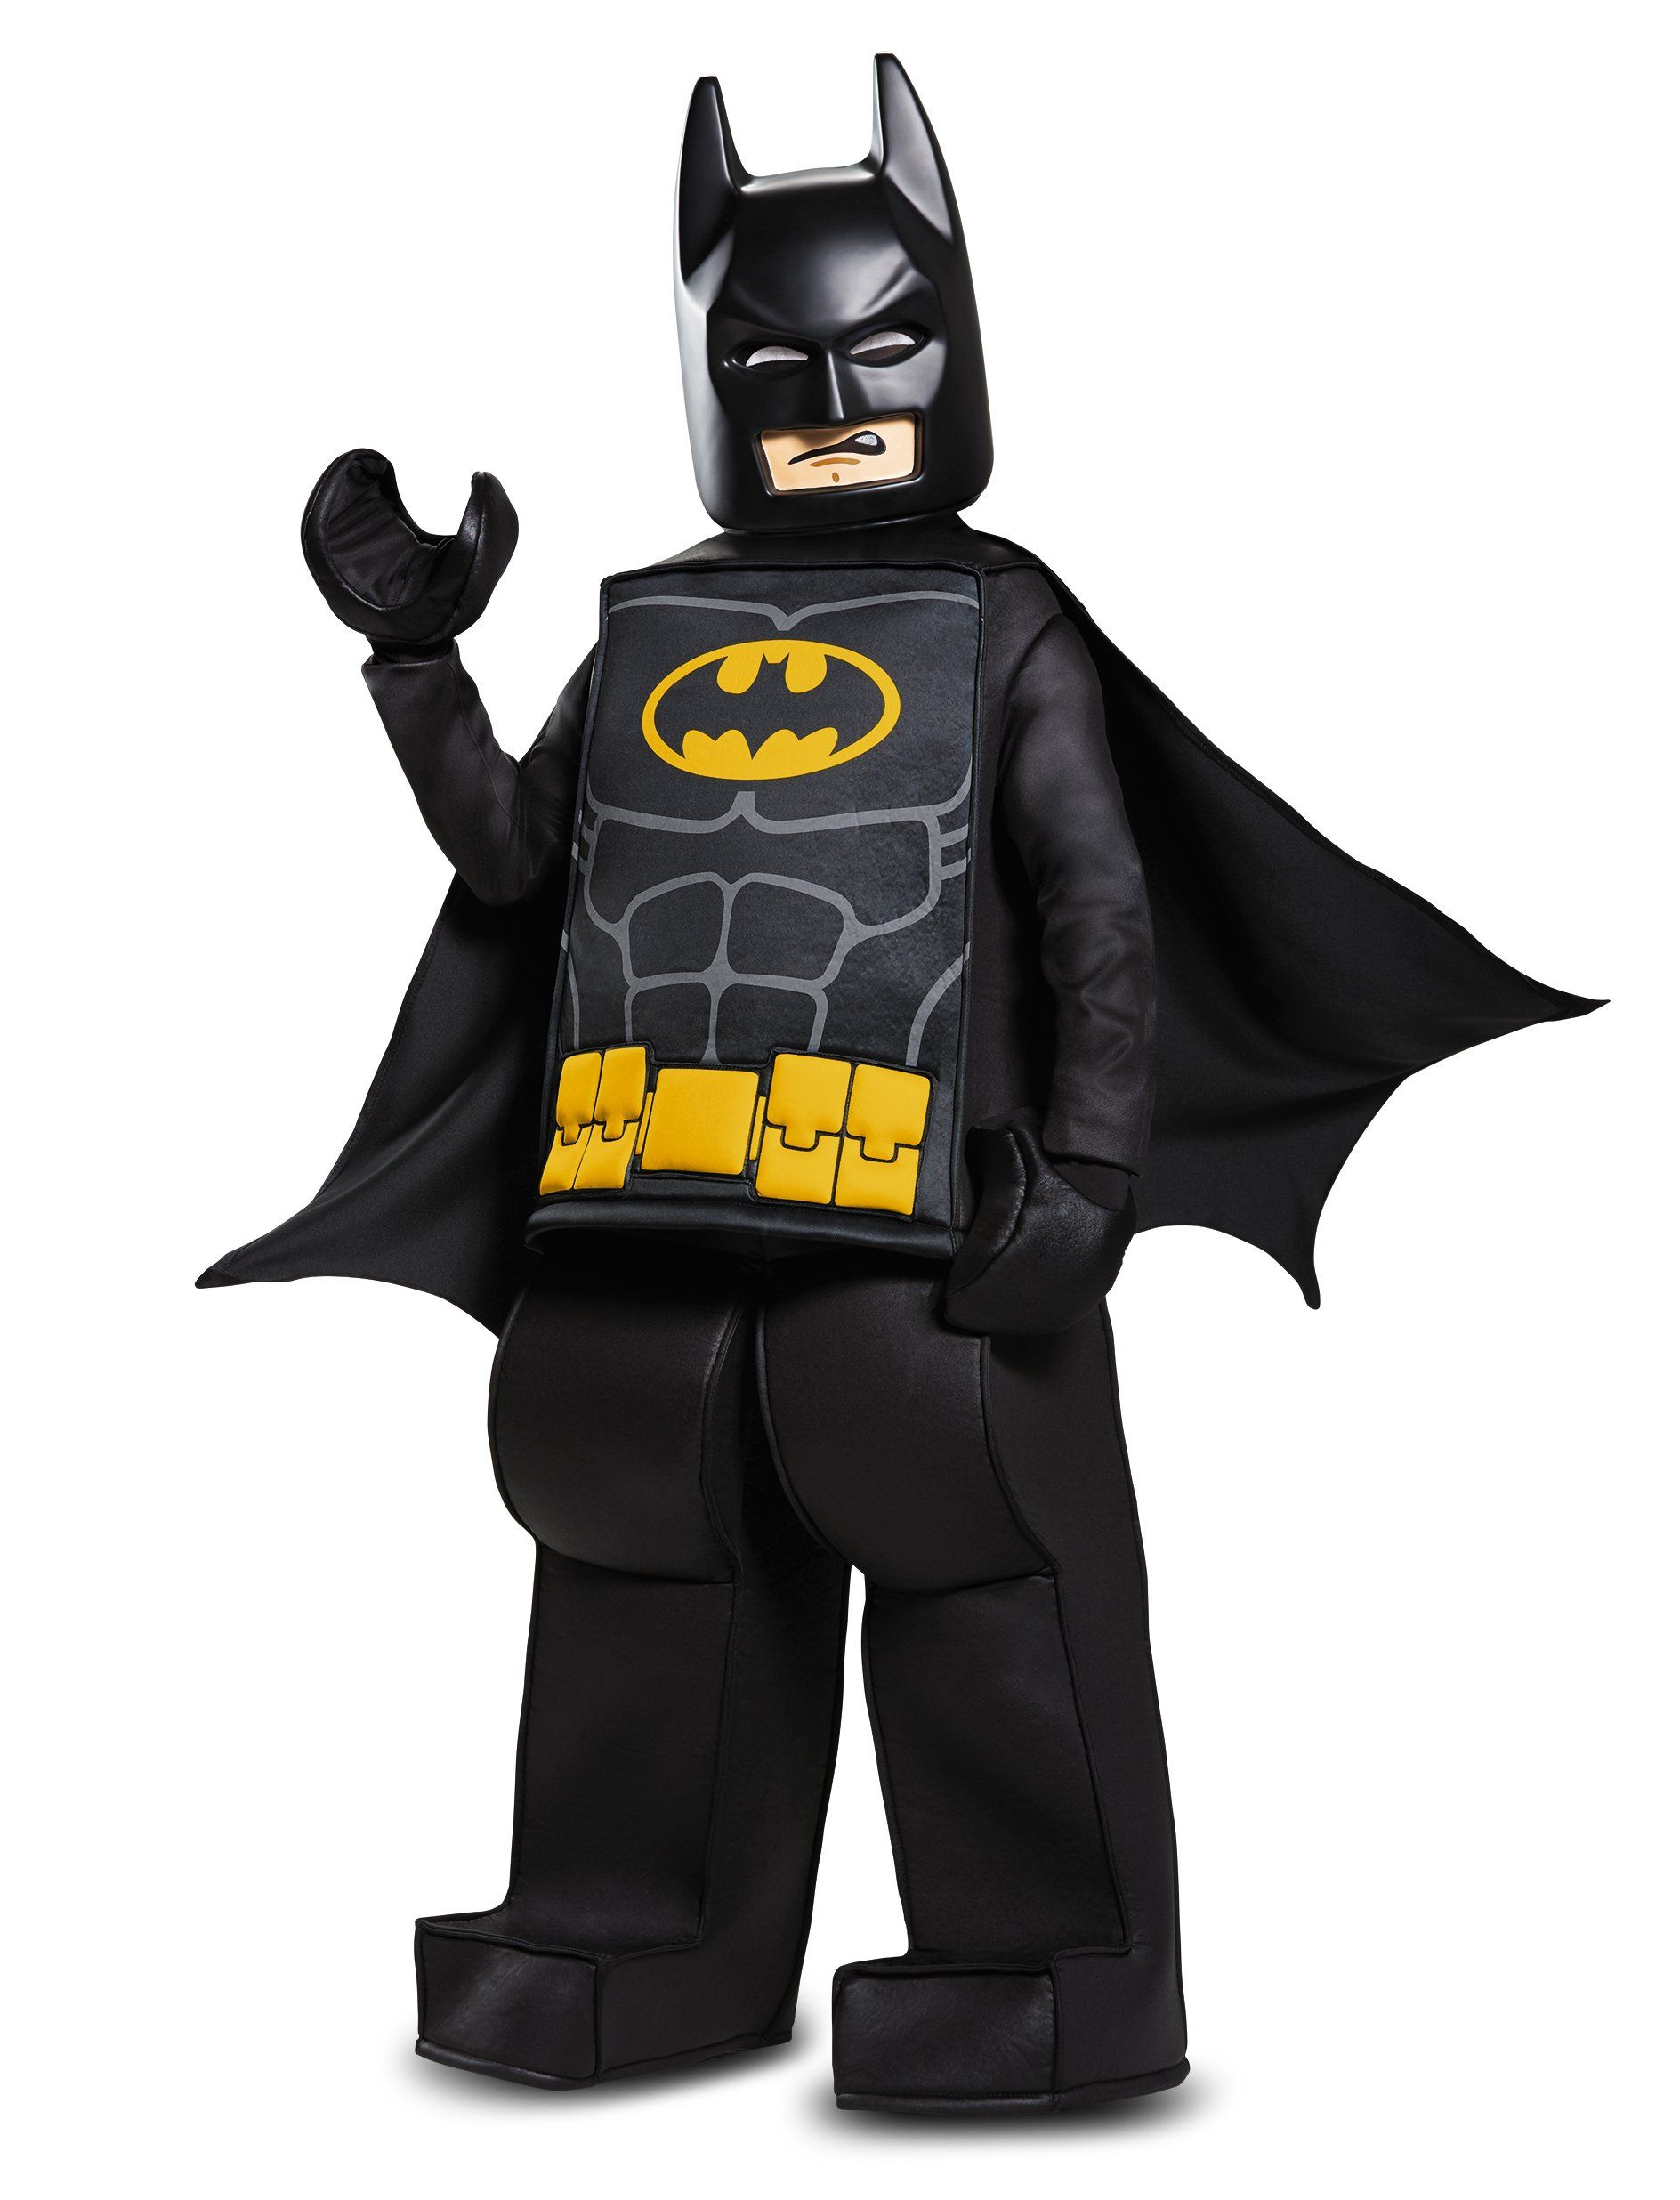 Disguise Batman LEGO Movie Prestige Costume Black Small 46